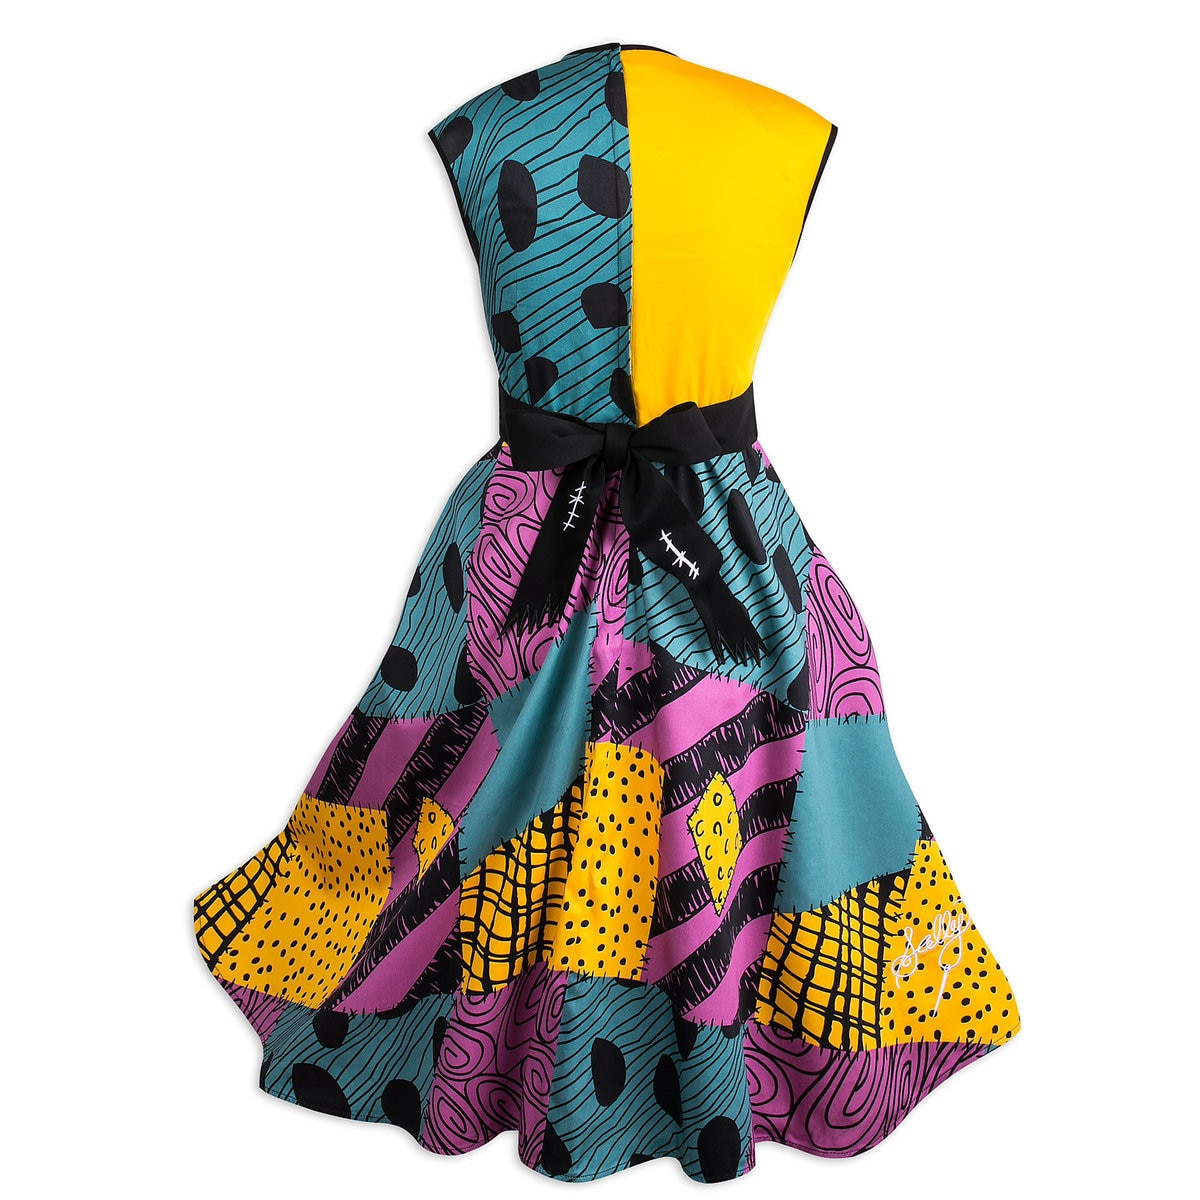 Sally Dress for Women - The Nightmare Before Christmas | shopDisney